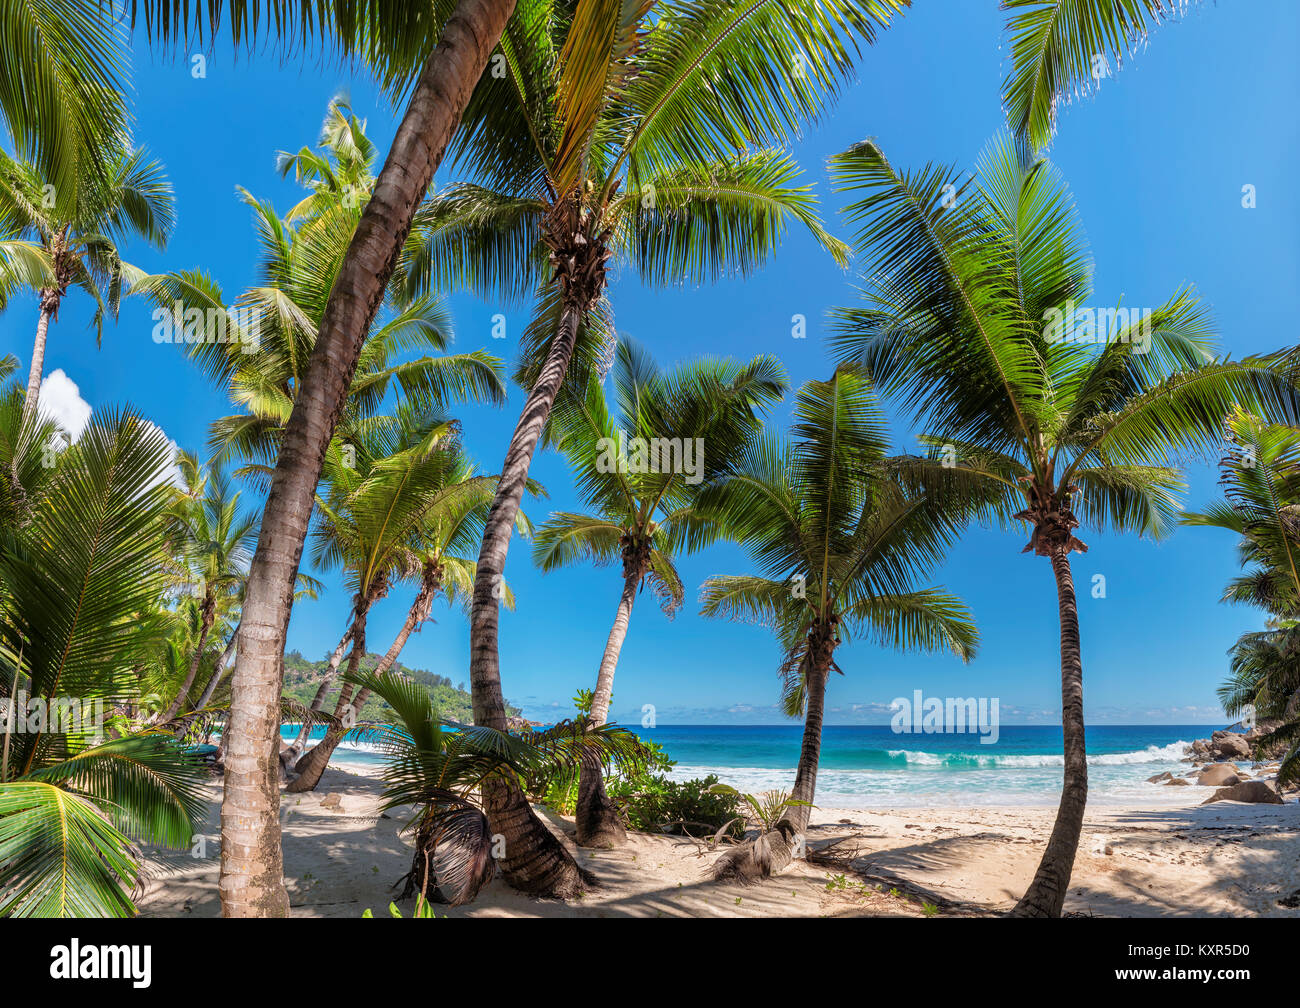 Coconut palm trees on tropical beach in Seychelles. - Stock Image